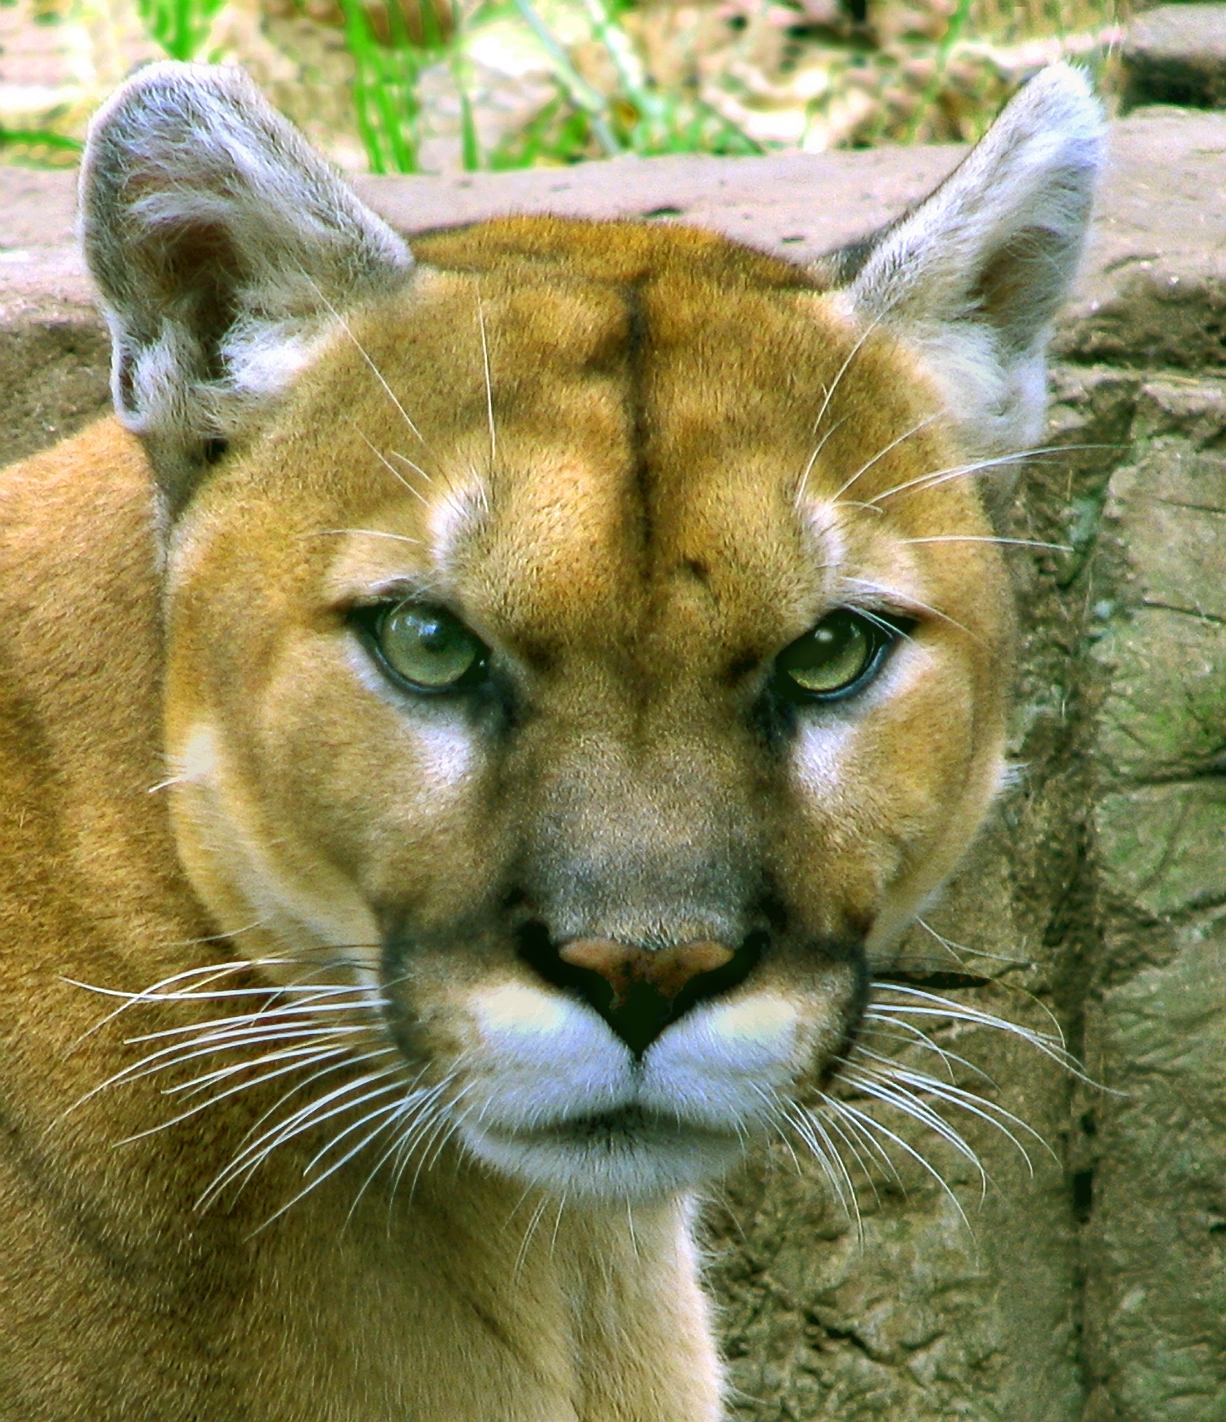 File:Mountain-lion-new.jpg - Wikimedia Commons